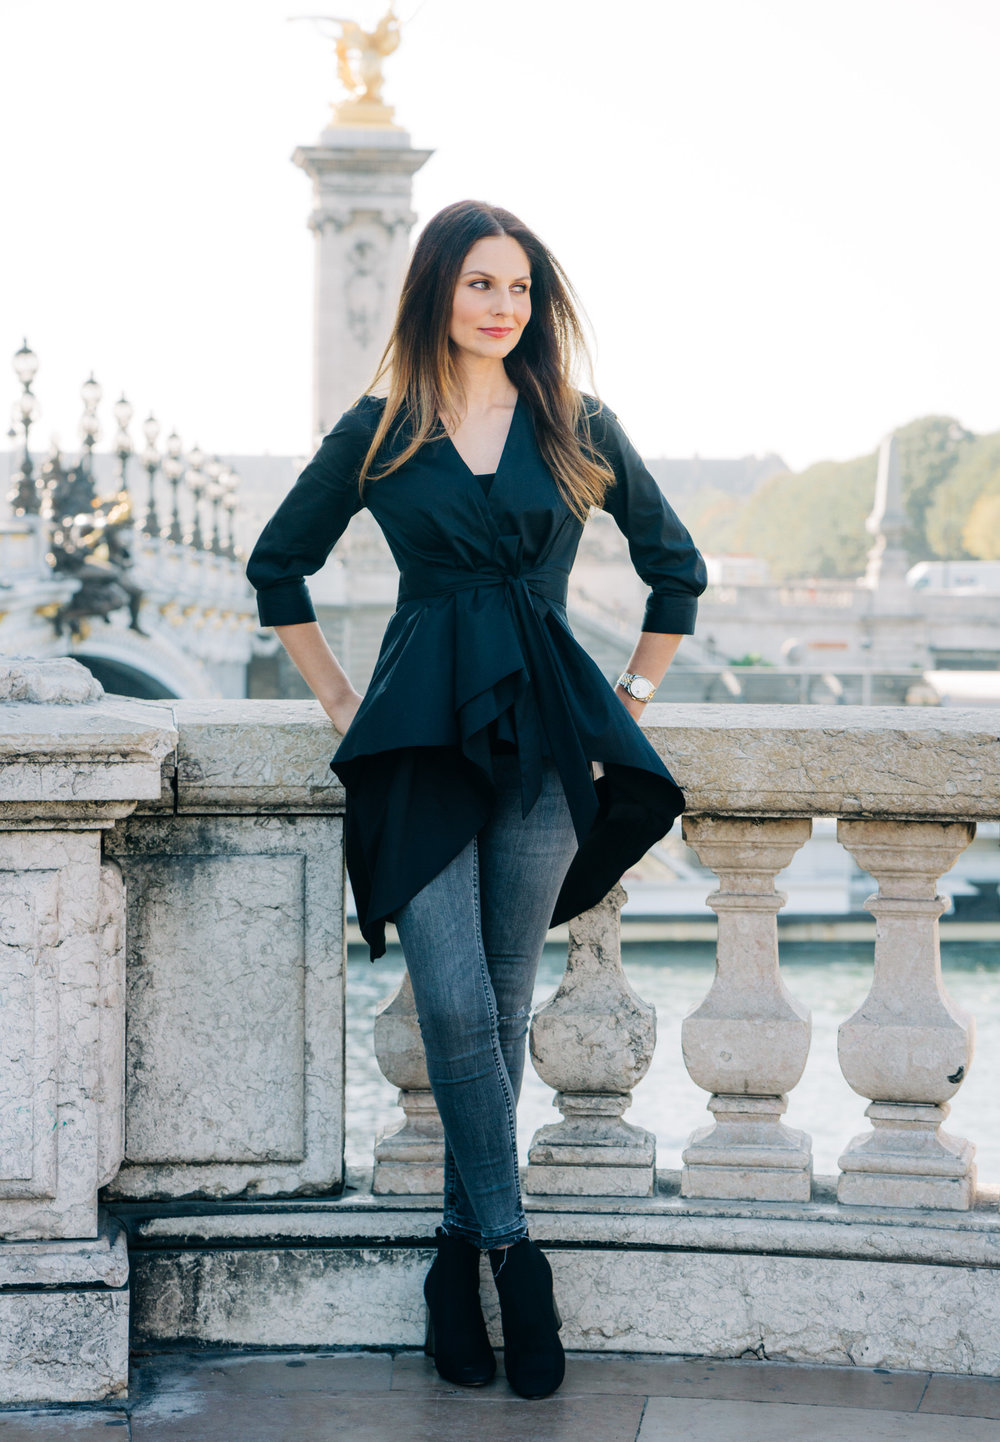 solo female traveler photo shoot paris france